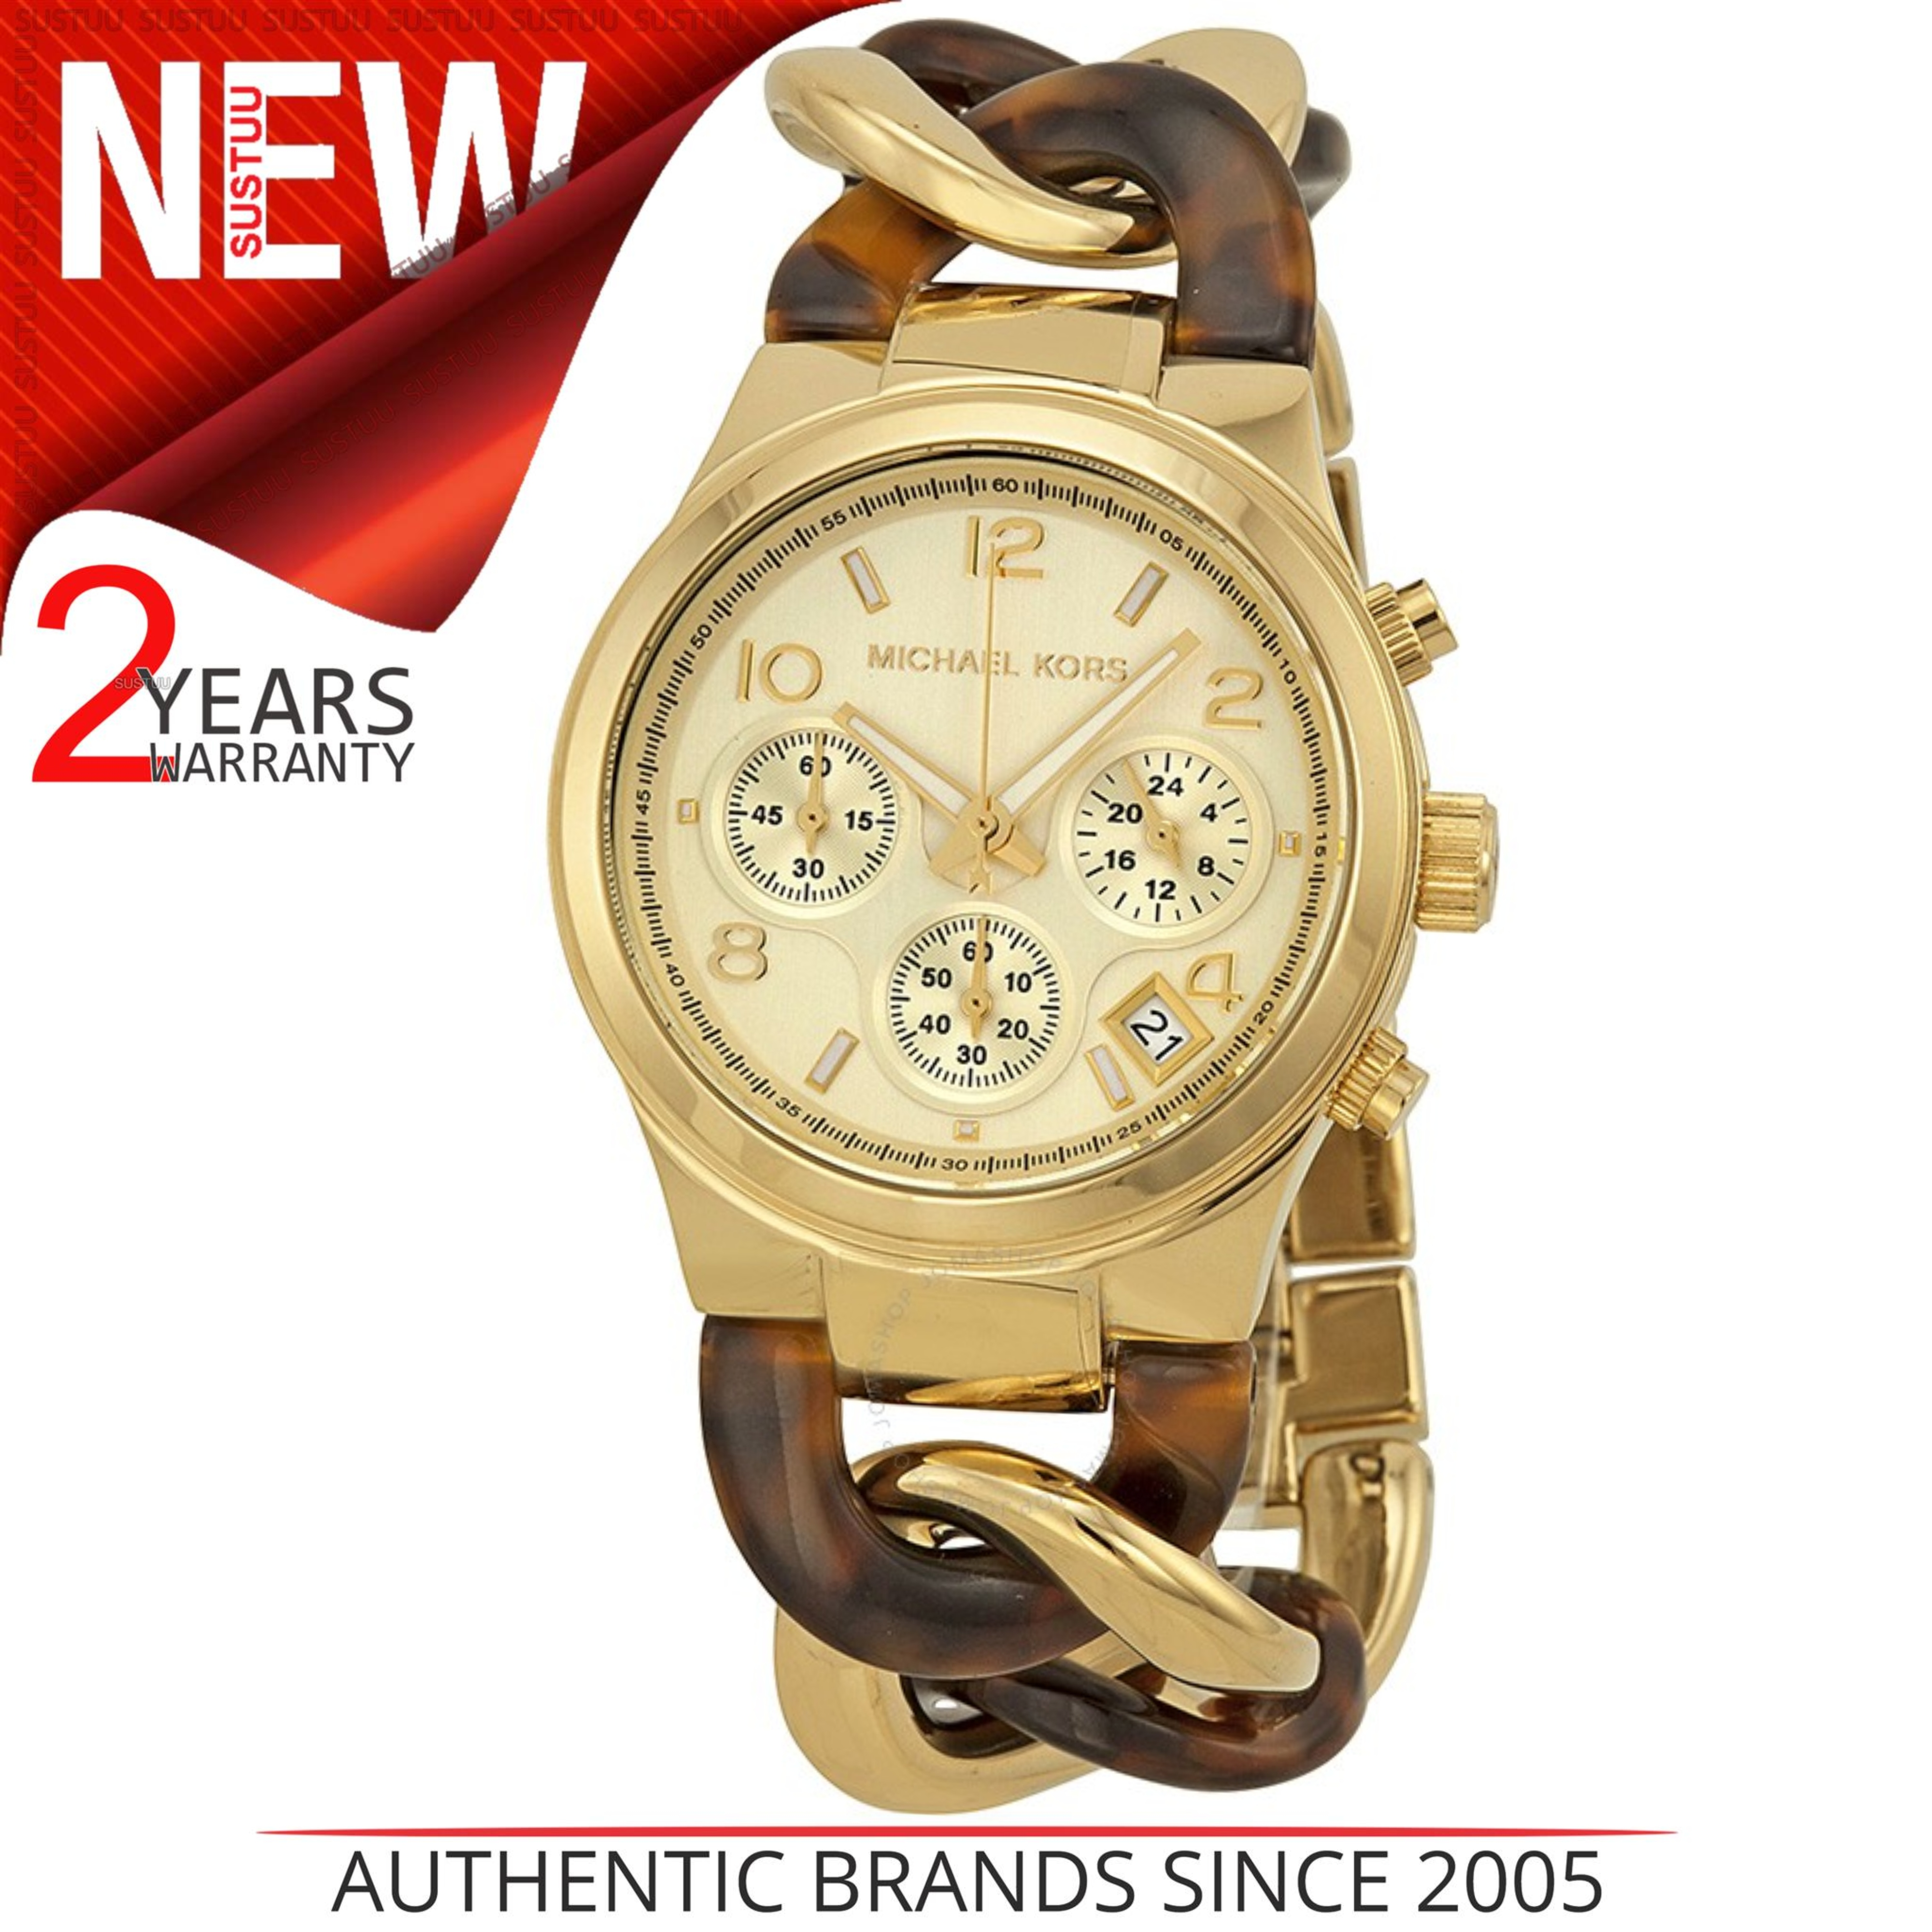 73d639ccaab9 Details about Michael Kors Chain Link Ladies Watch MK4222│Chronograph│Tortoise  Acrylic Gold